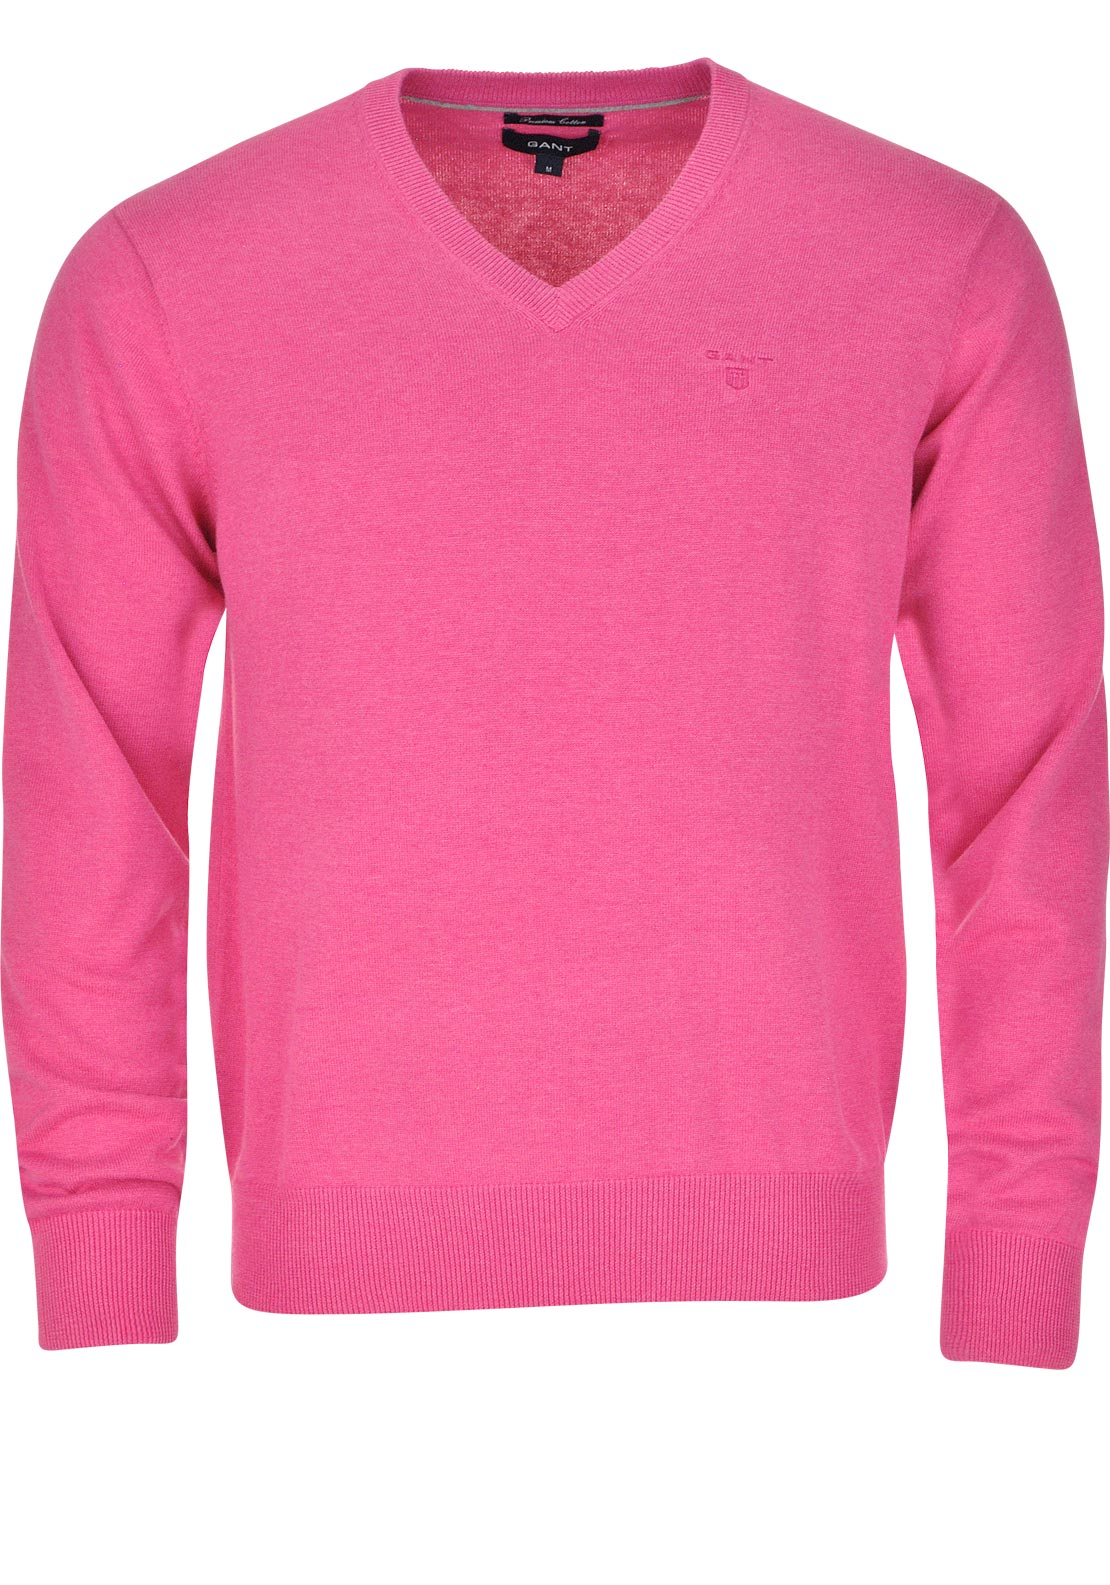 GANT Mens Lightweight Cotton V-neck, Pink